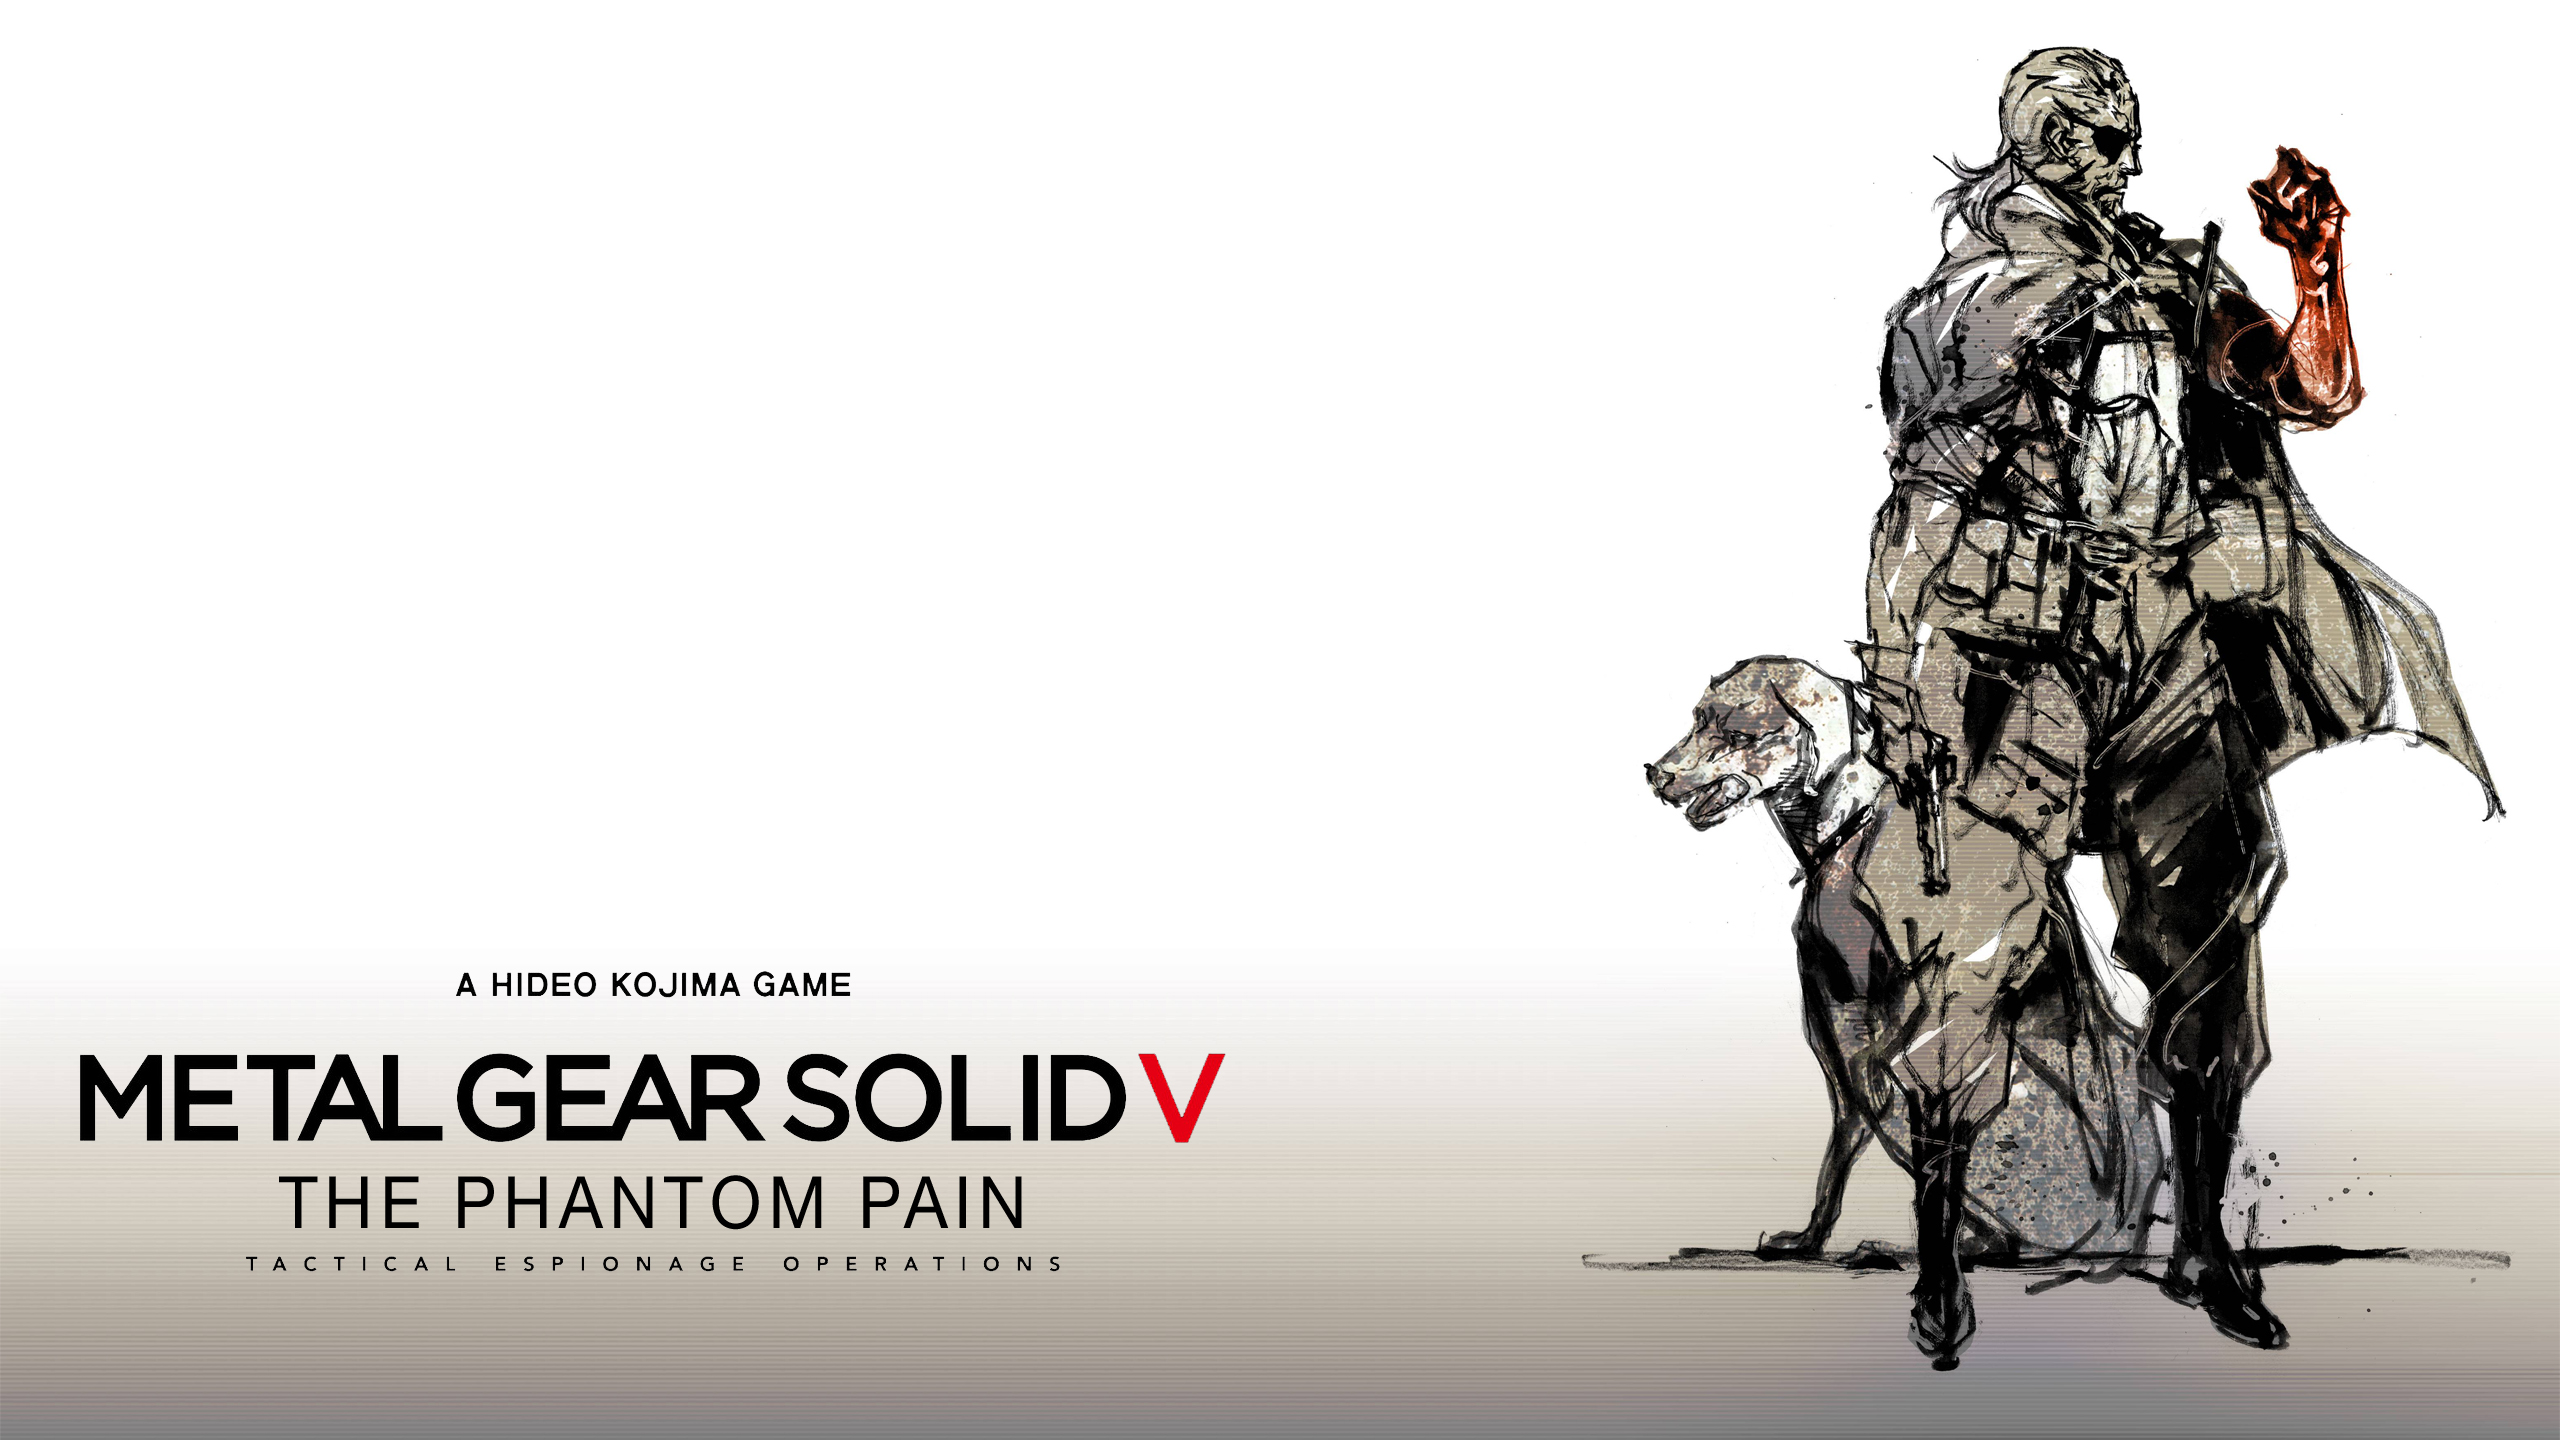 Metal Gear Solid V: The Phantom Pain HD Wallpaper